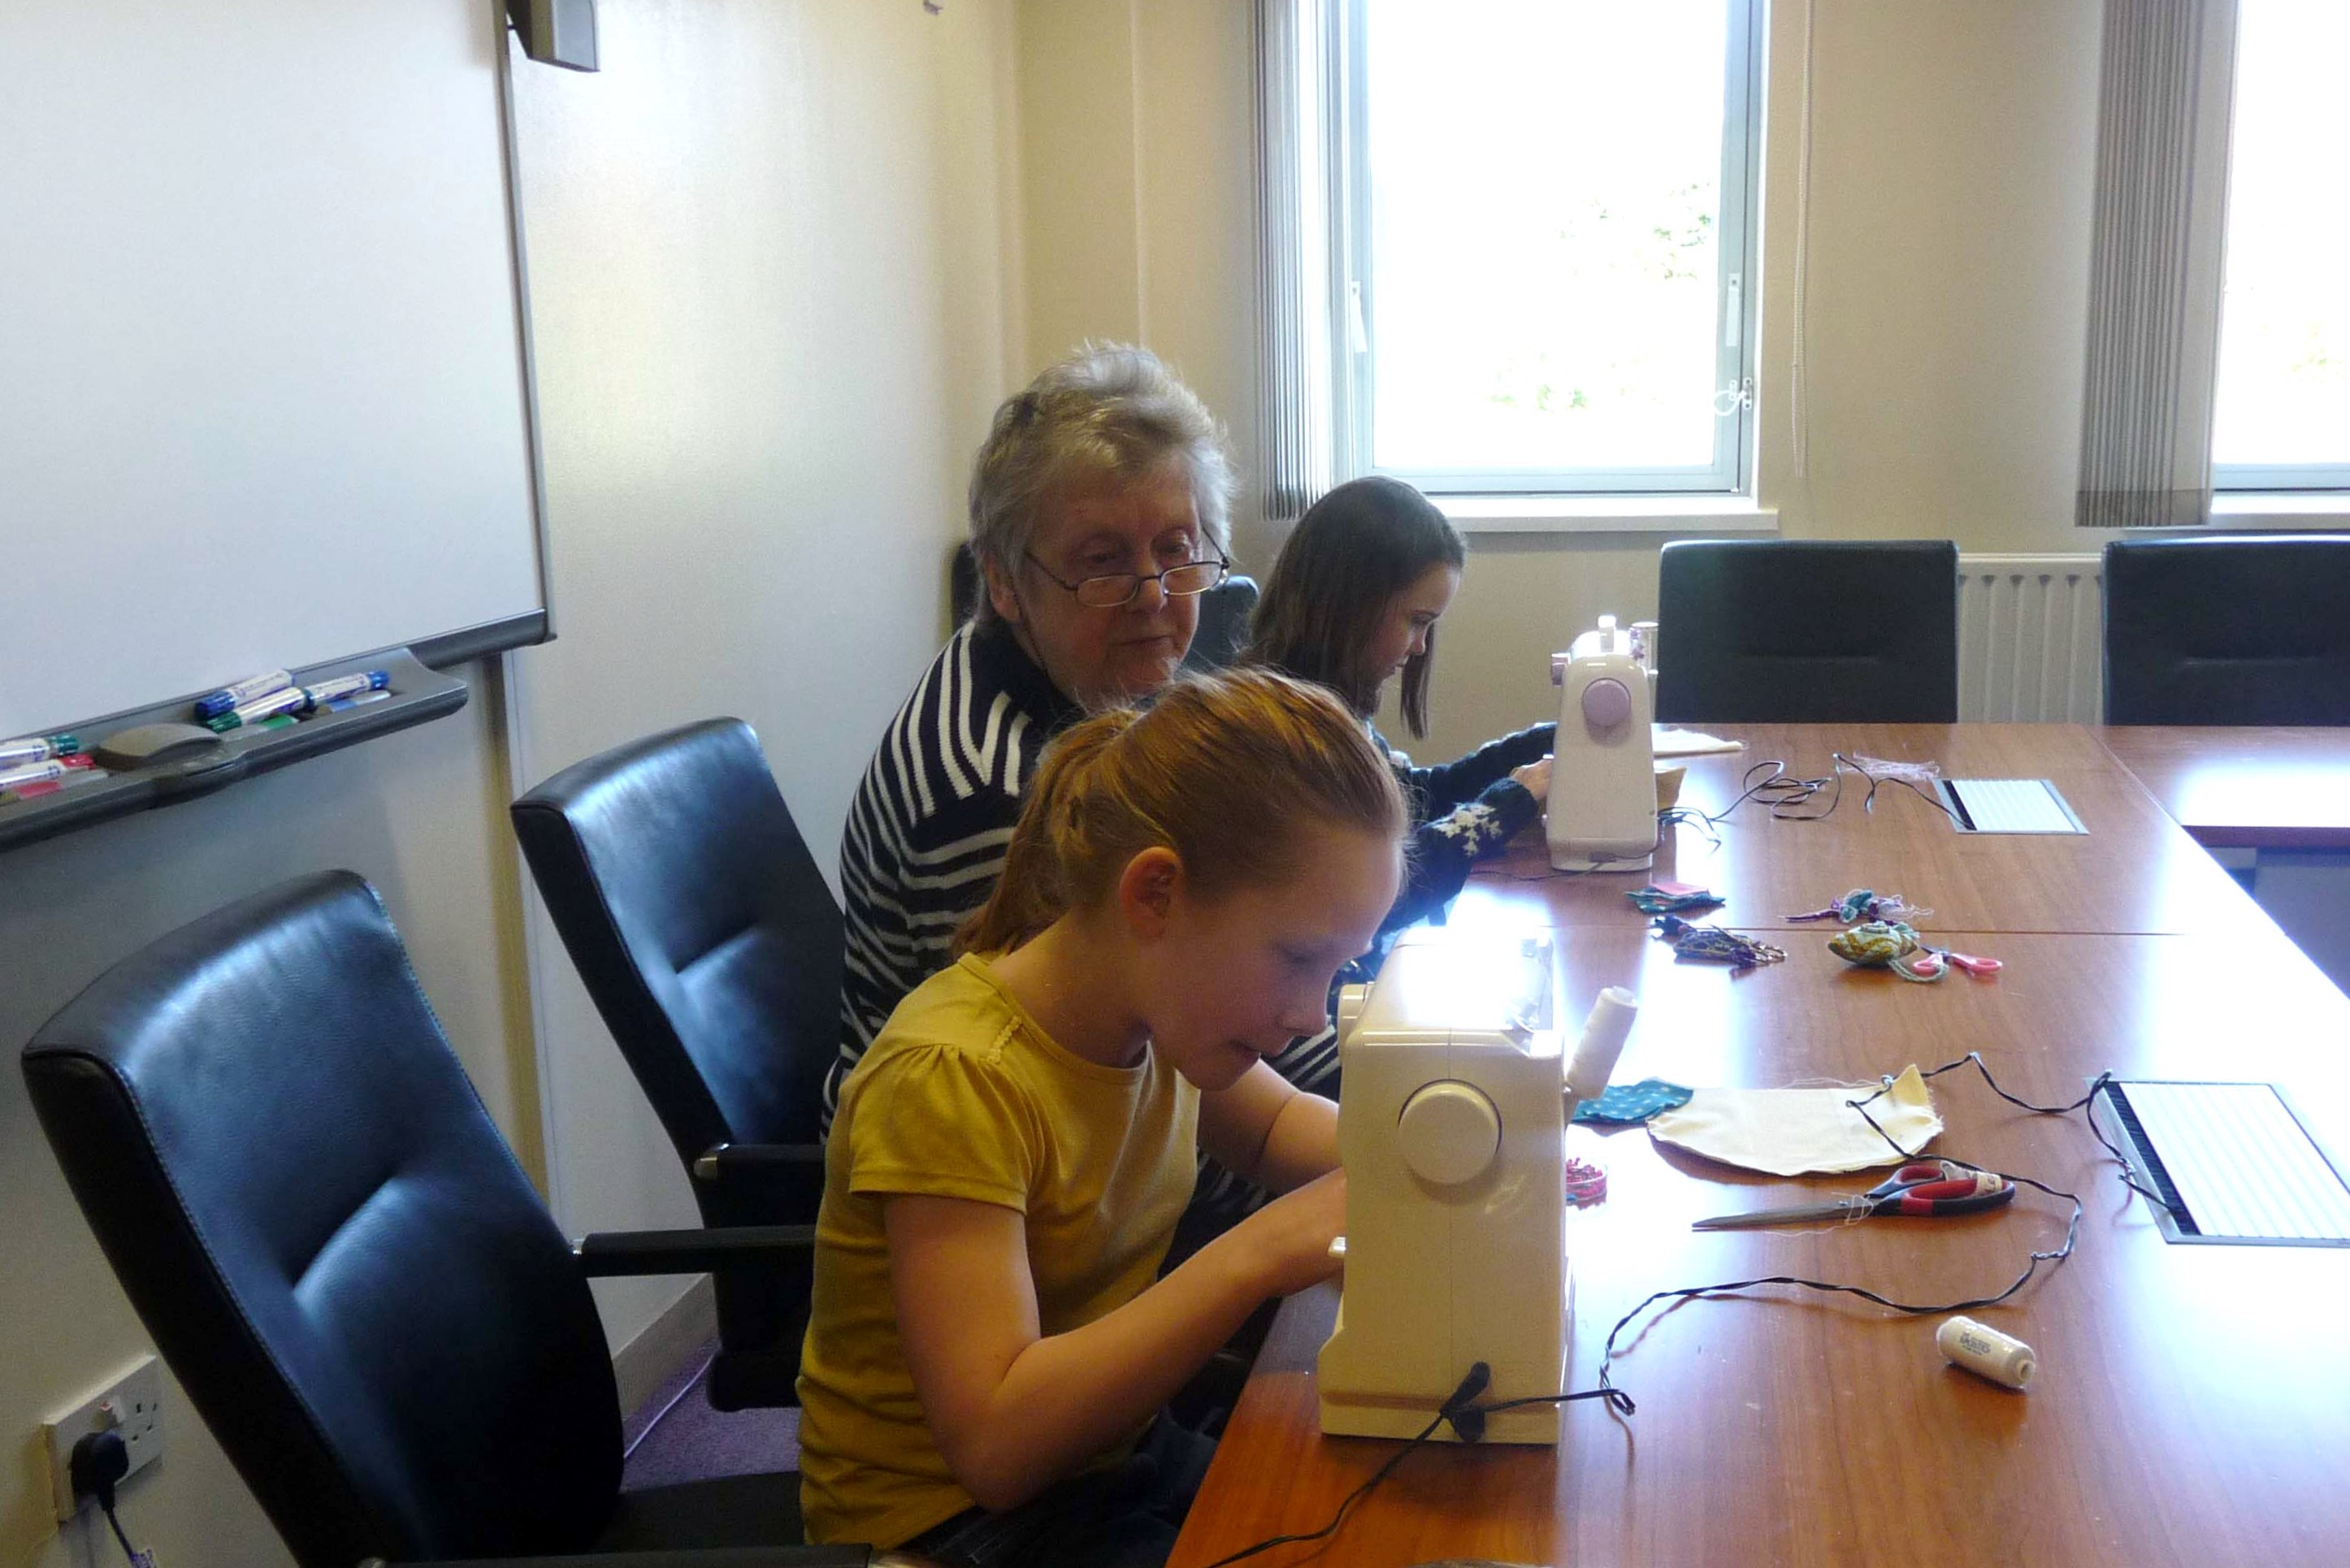 Val is helping Zoe and Ruby with machine sewing